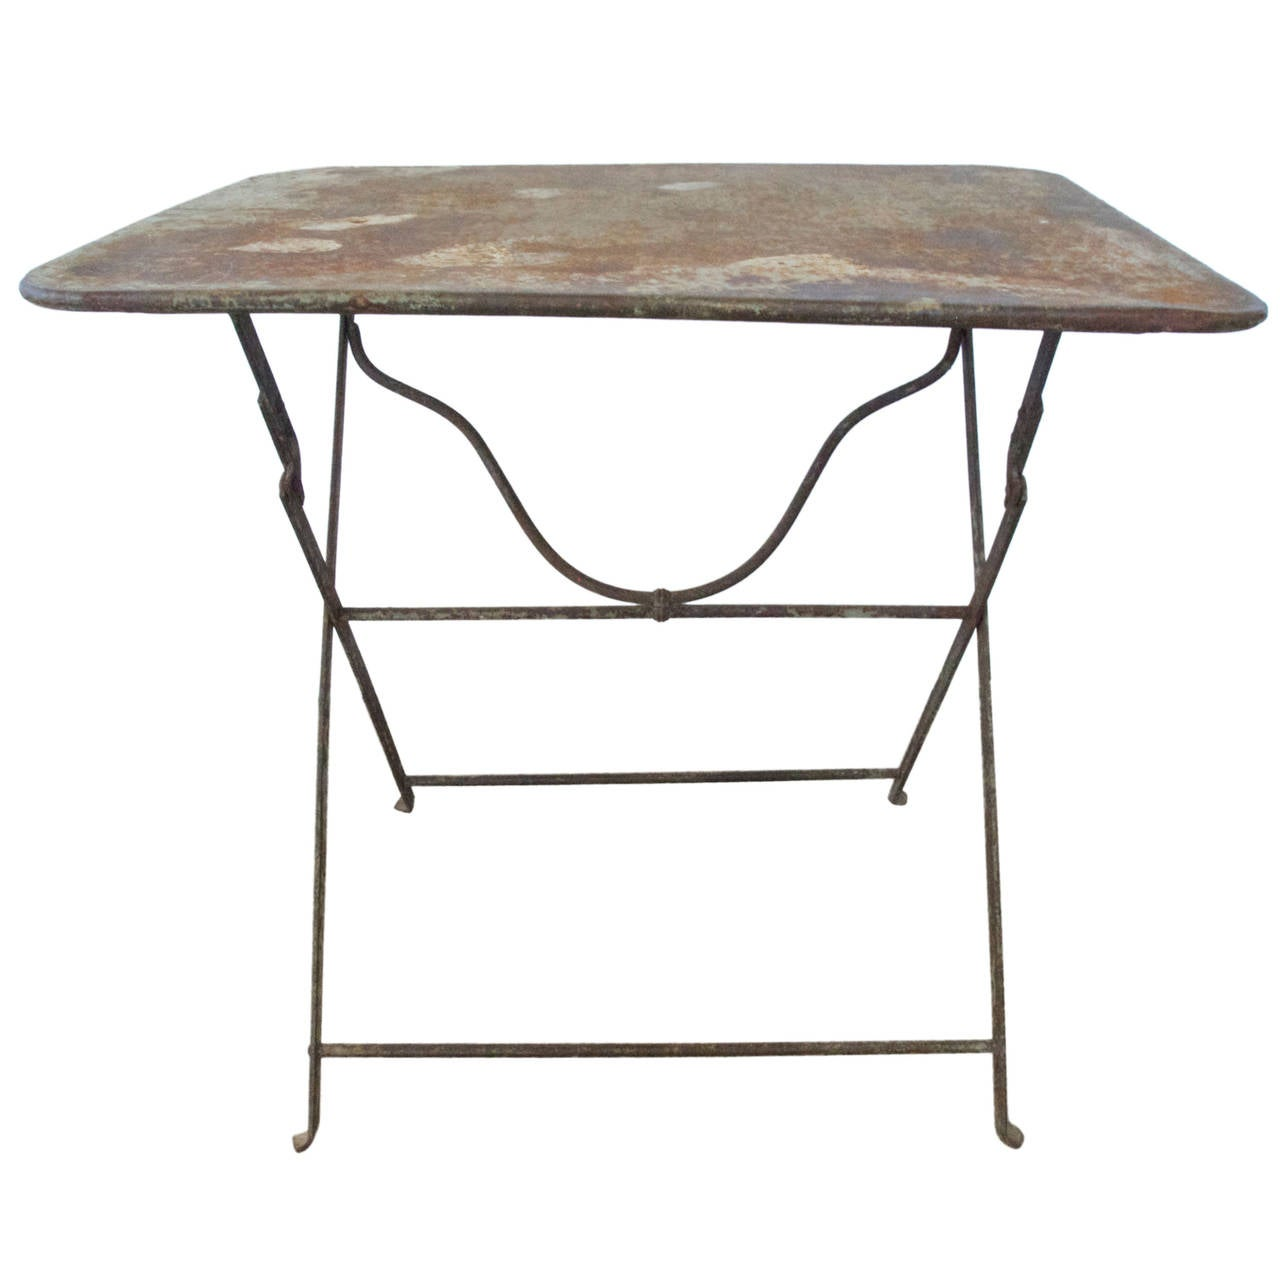 French Folding Metal Garden Table 1